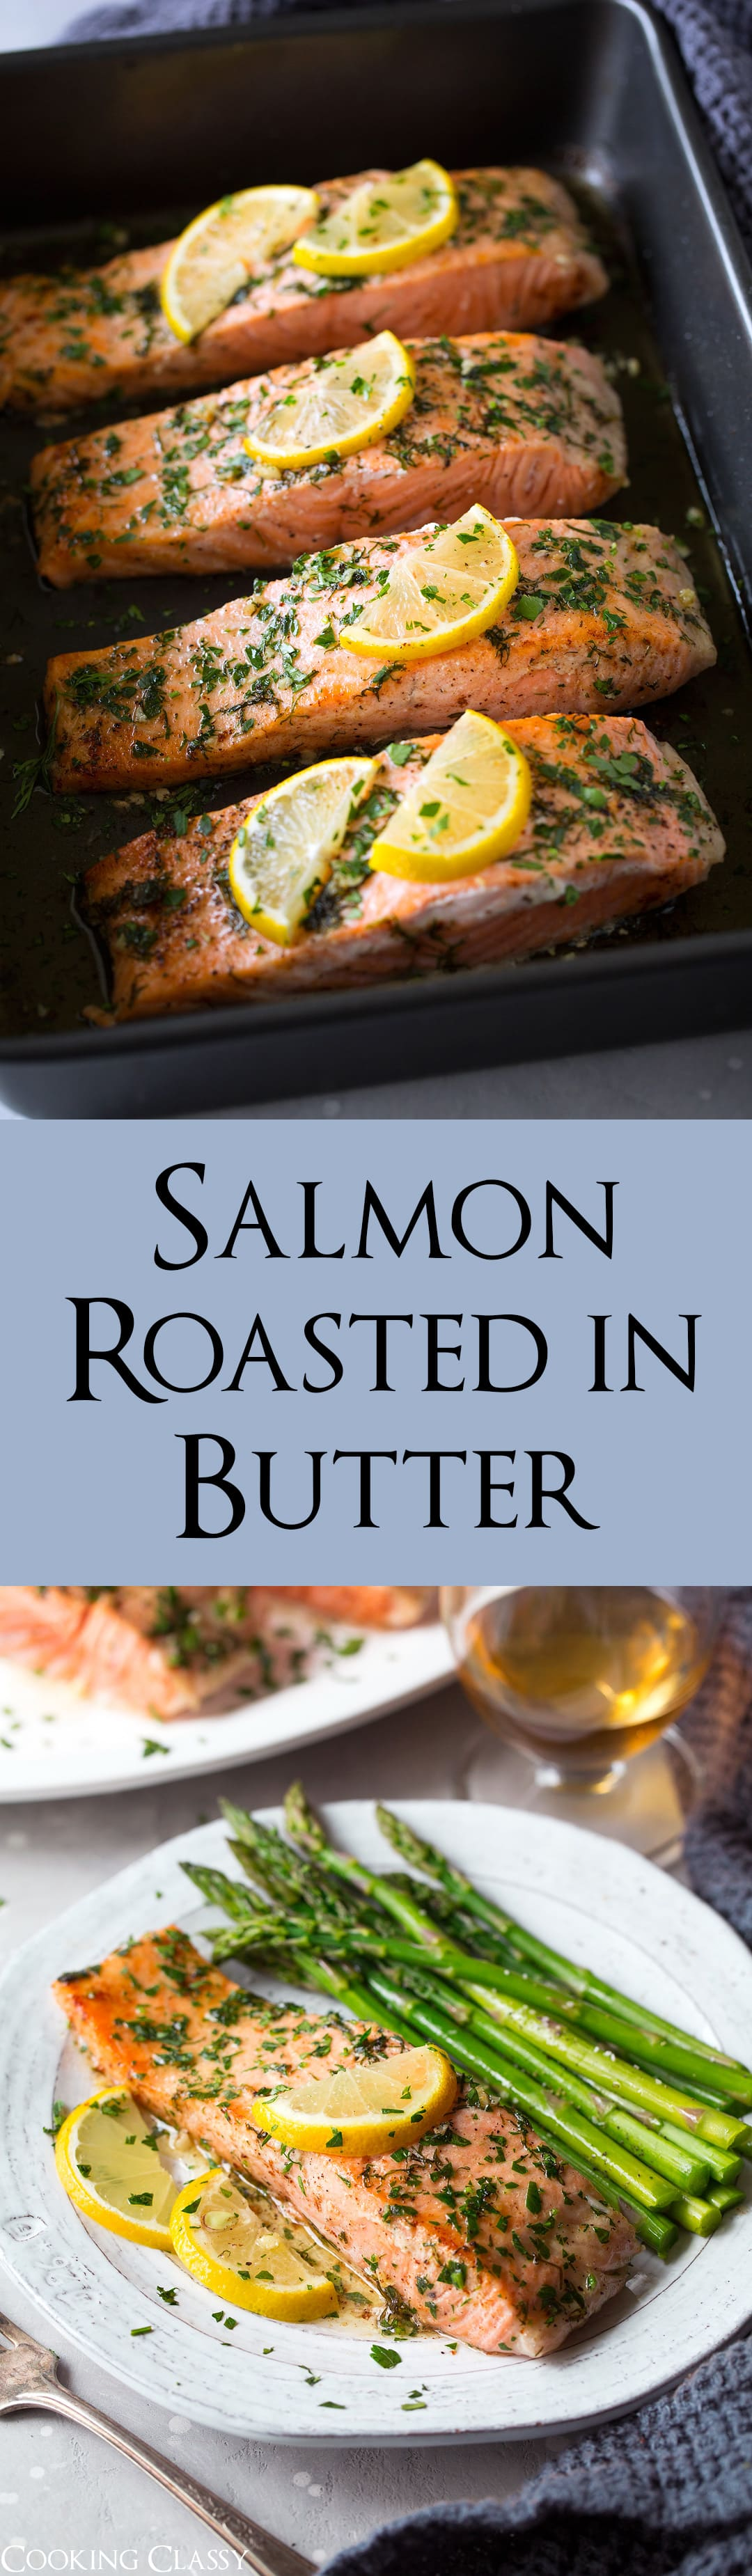 Salmon Roasted in Butter - A super easy, perfectly tasty salmon recipe, ready from start to finish in 20 minutes! Salmon is roasted in a buttery herb mixture and finished with a slash of lemon juice or a sprinkle of zest (if you love lemon add both!). A simple yet elegant entree perfectly fit for any day of the week! #salmon #roastedsalmon #easydinner #cookingclassy